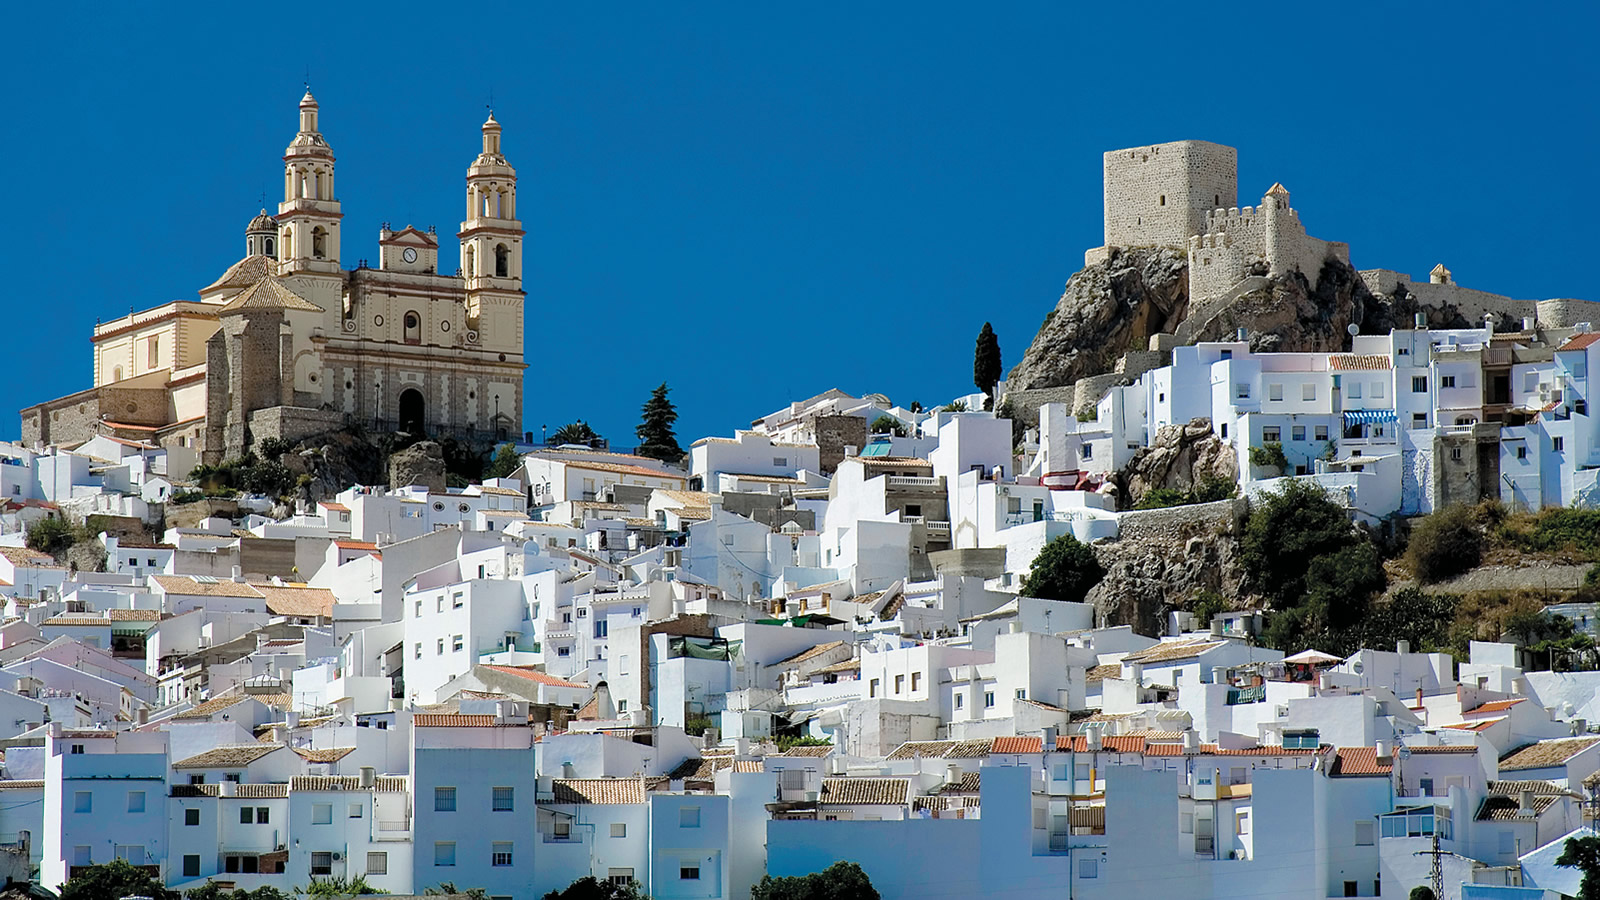 Cathedral and Fort in Andalucia, Spain